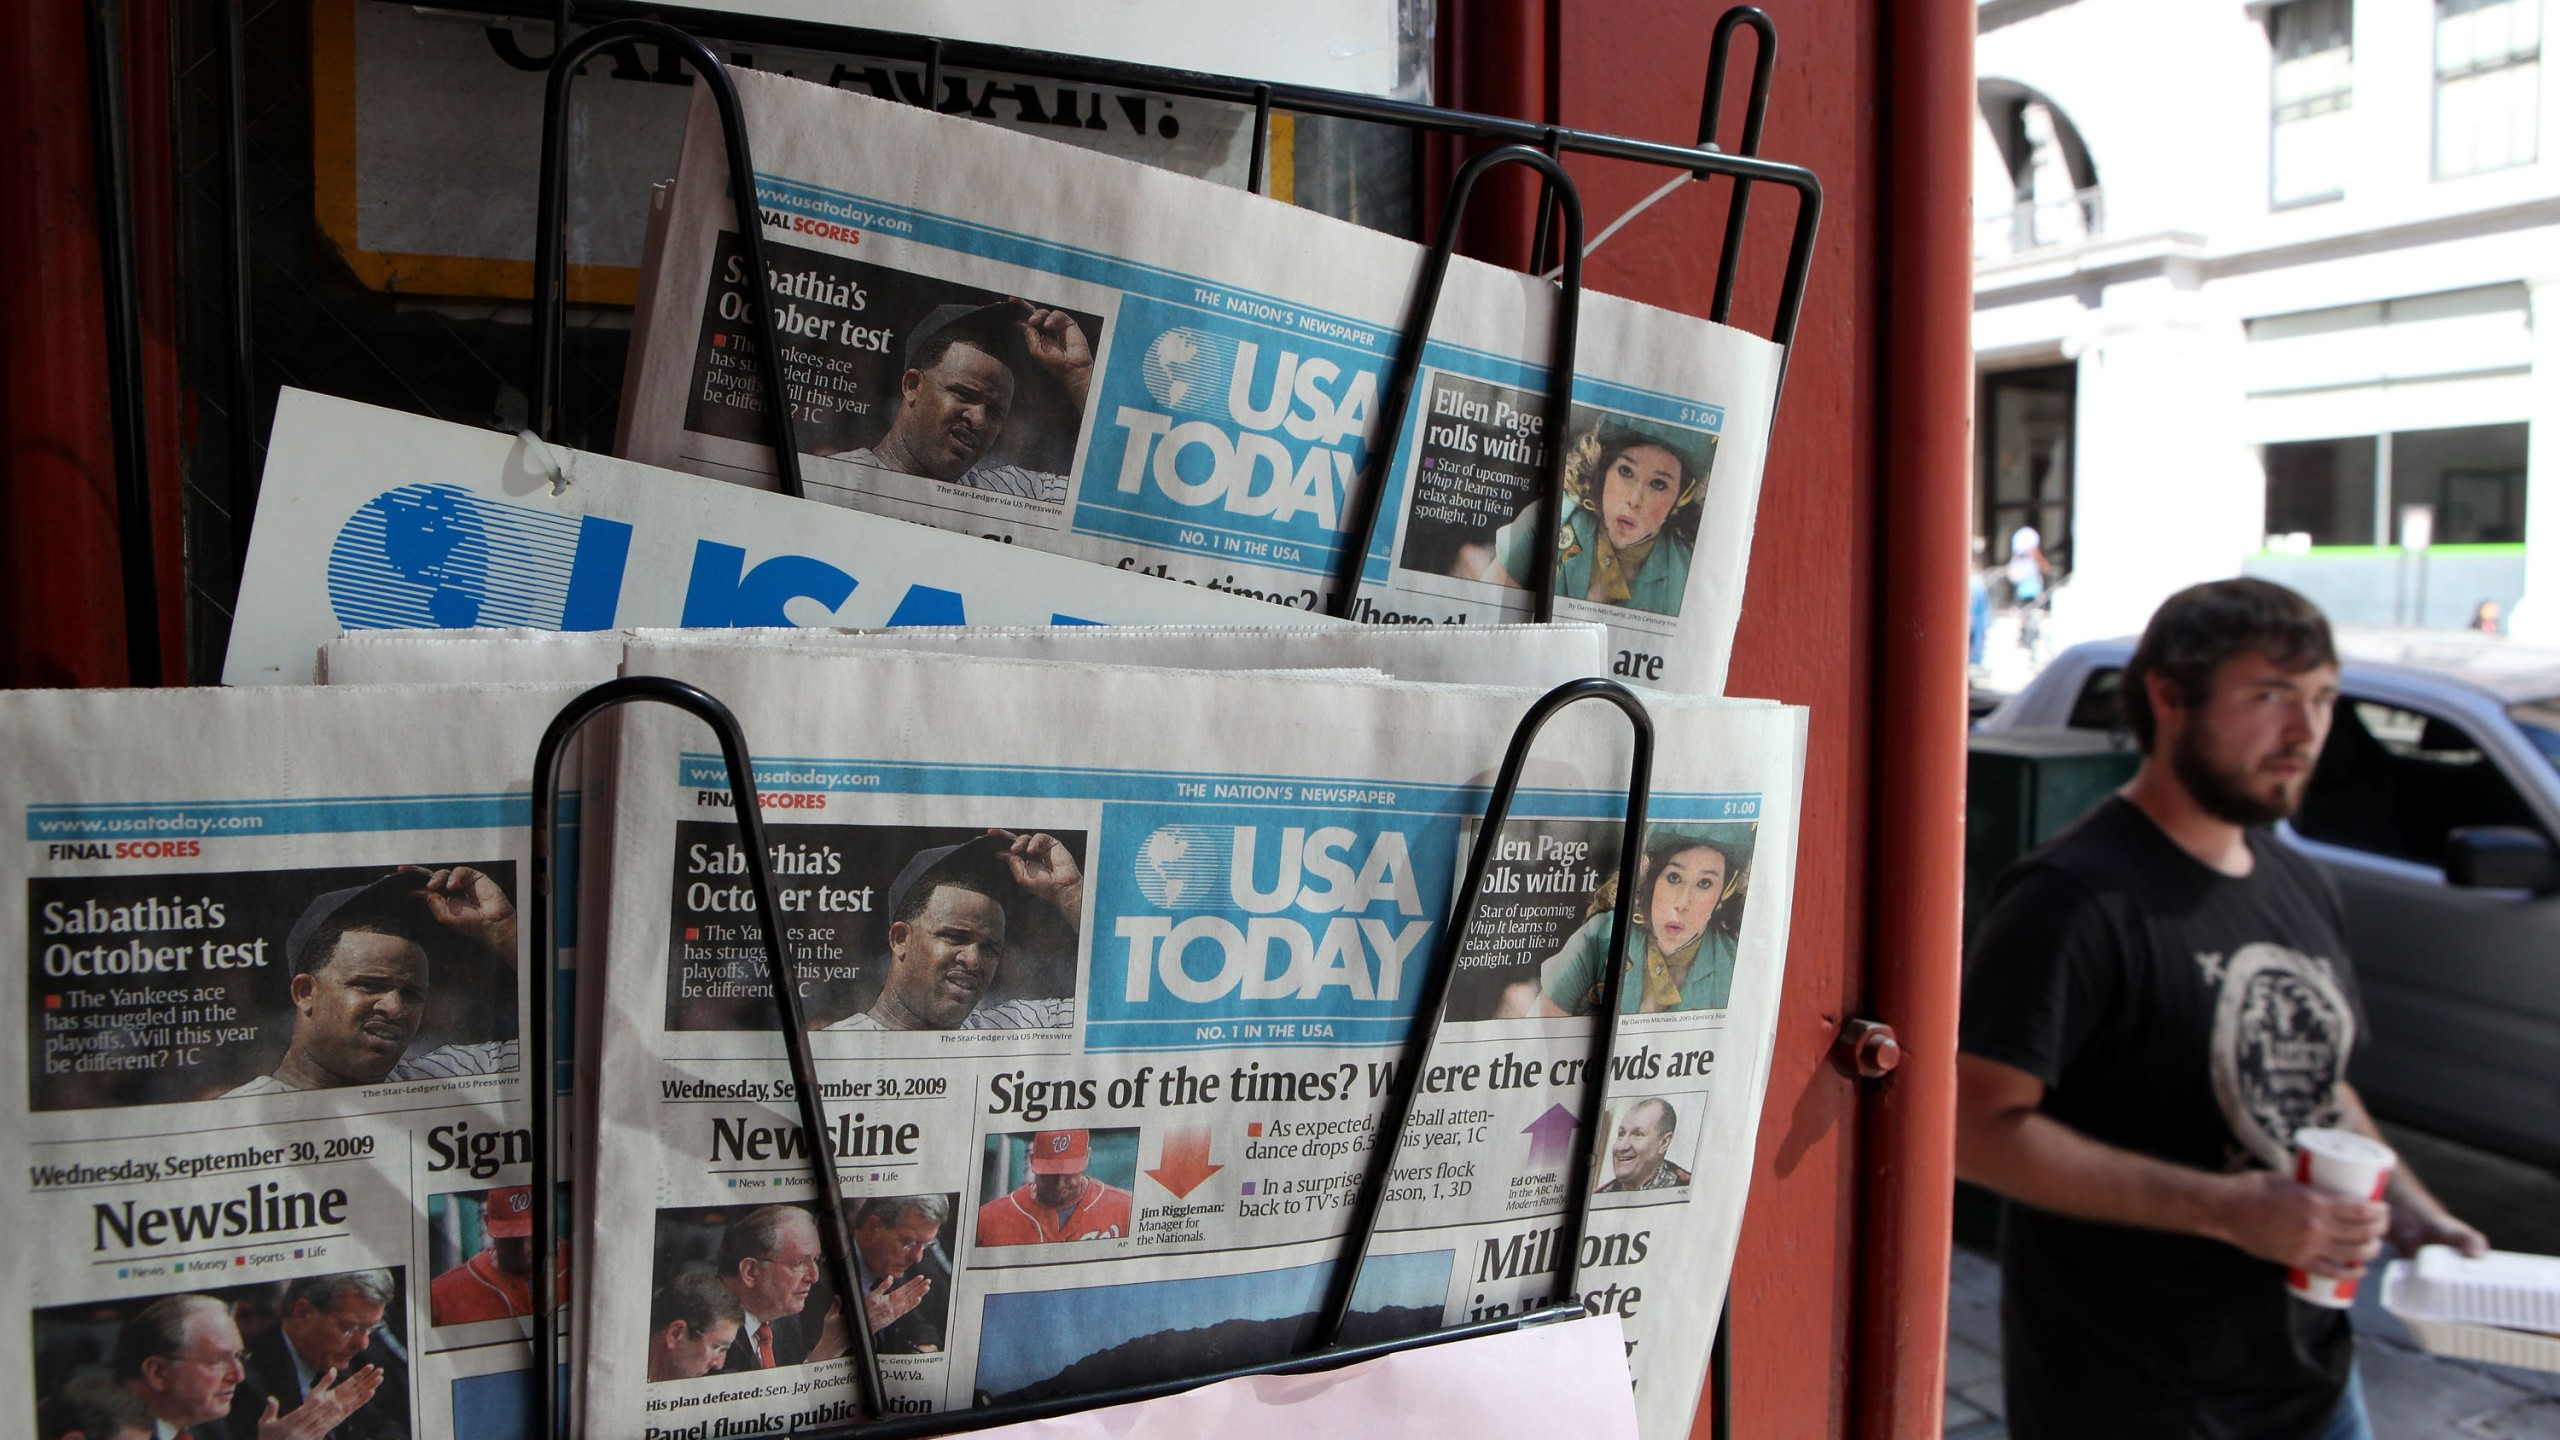 Copies of USA Today are displayed on a rack on Sept. 30, 2009 in San Francisco. (Credit: Justin Sullivan/Getty Images)